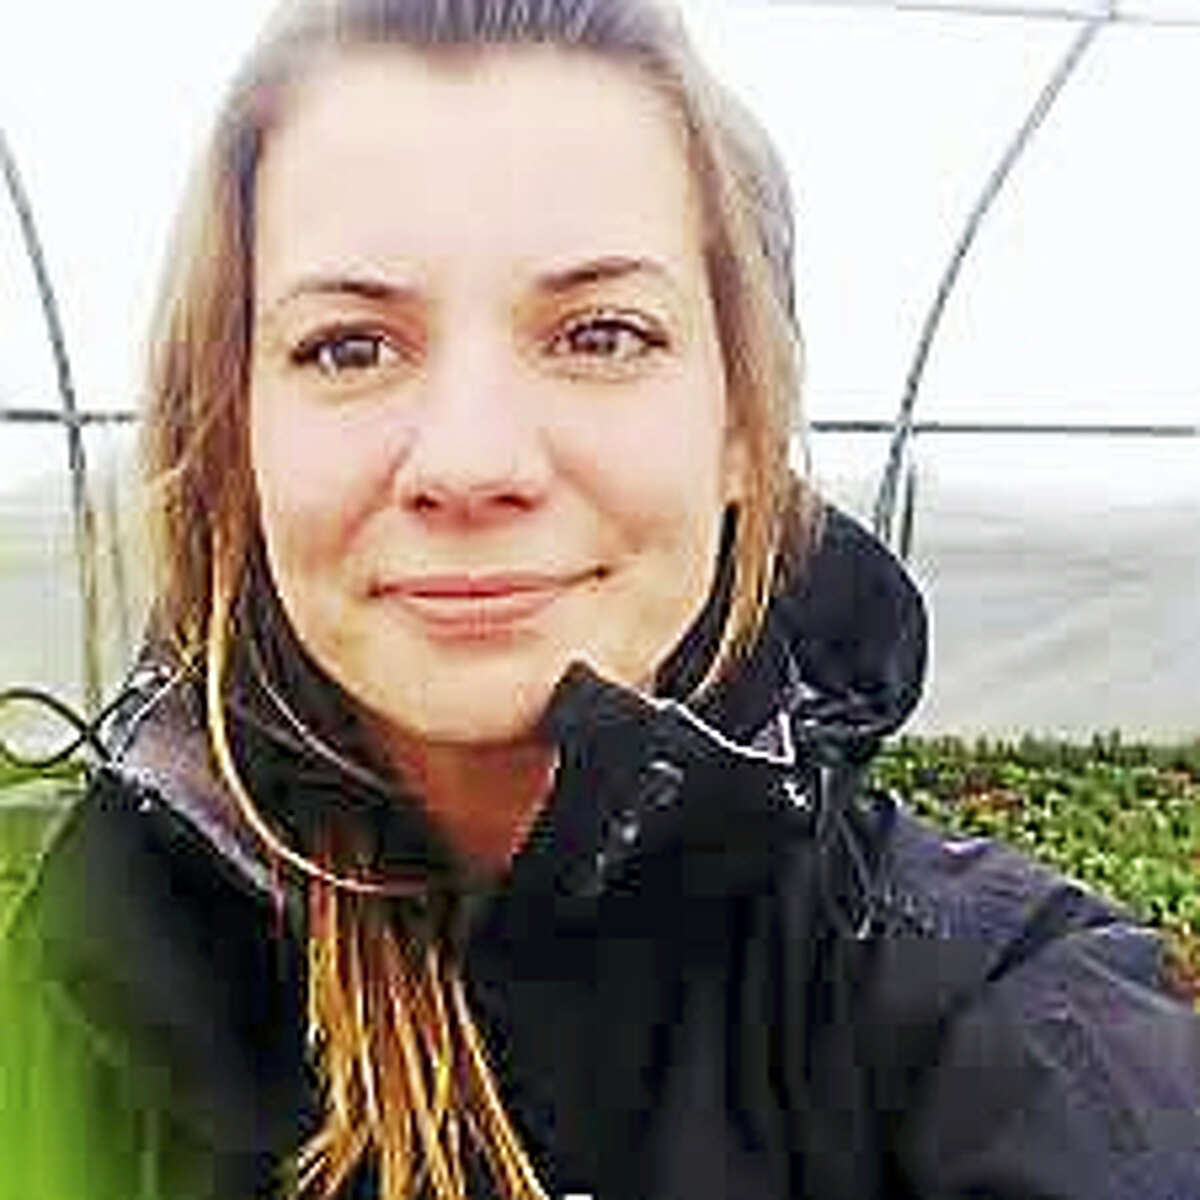 Organic horticulturist Renee Giroux will offer a visual presentation on organic herb gardening Thursday, March 30 at the Gunn Memorial Library in Washington.